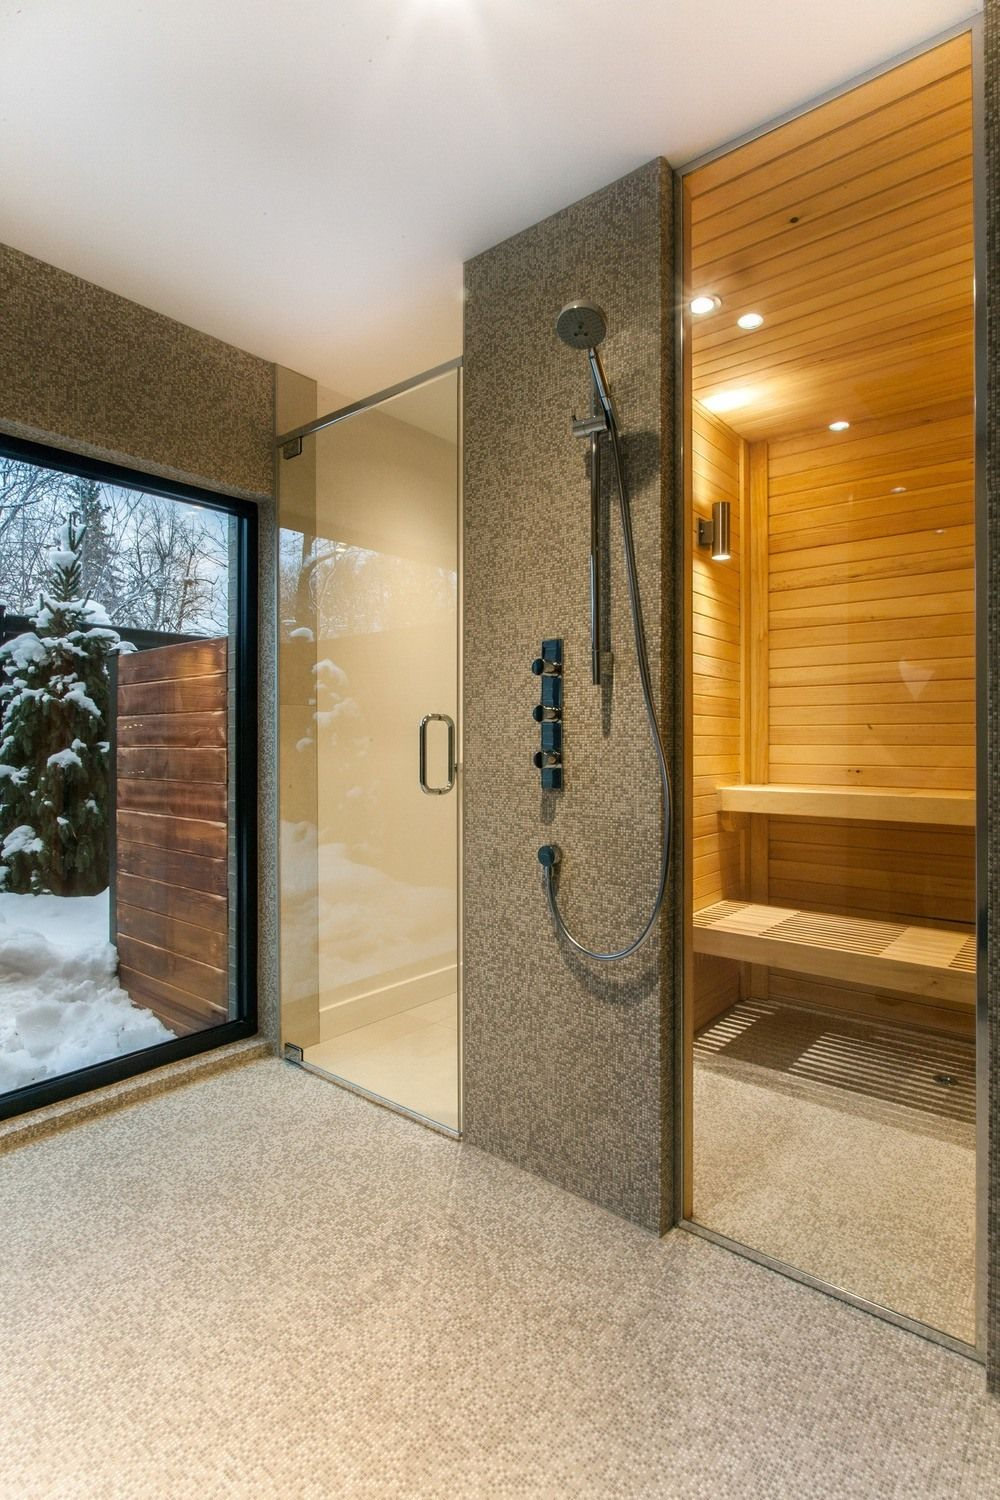 Best Shower System Reviews in 2018 | Shower systems, Shower panels ...